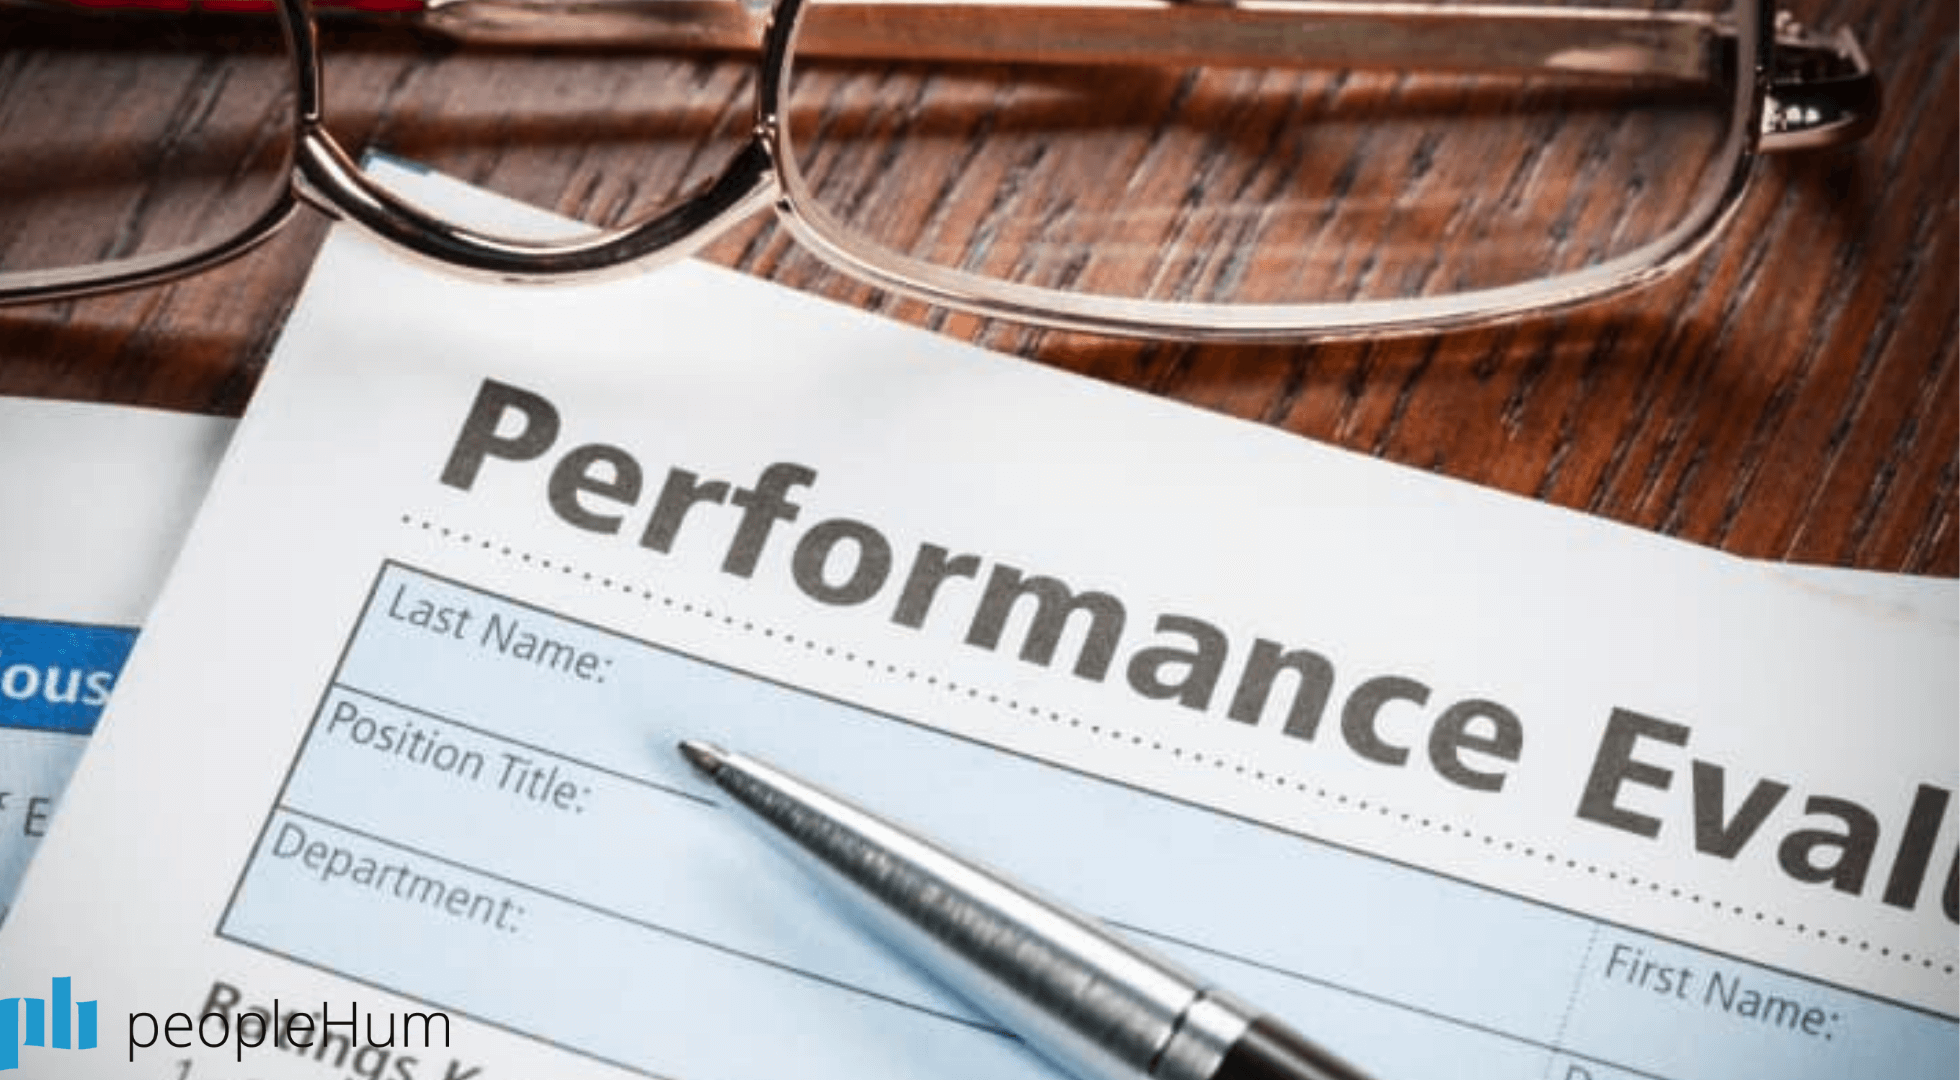 Performance management system in times of COVID-19